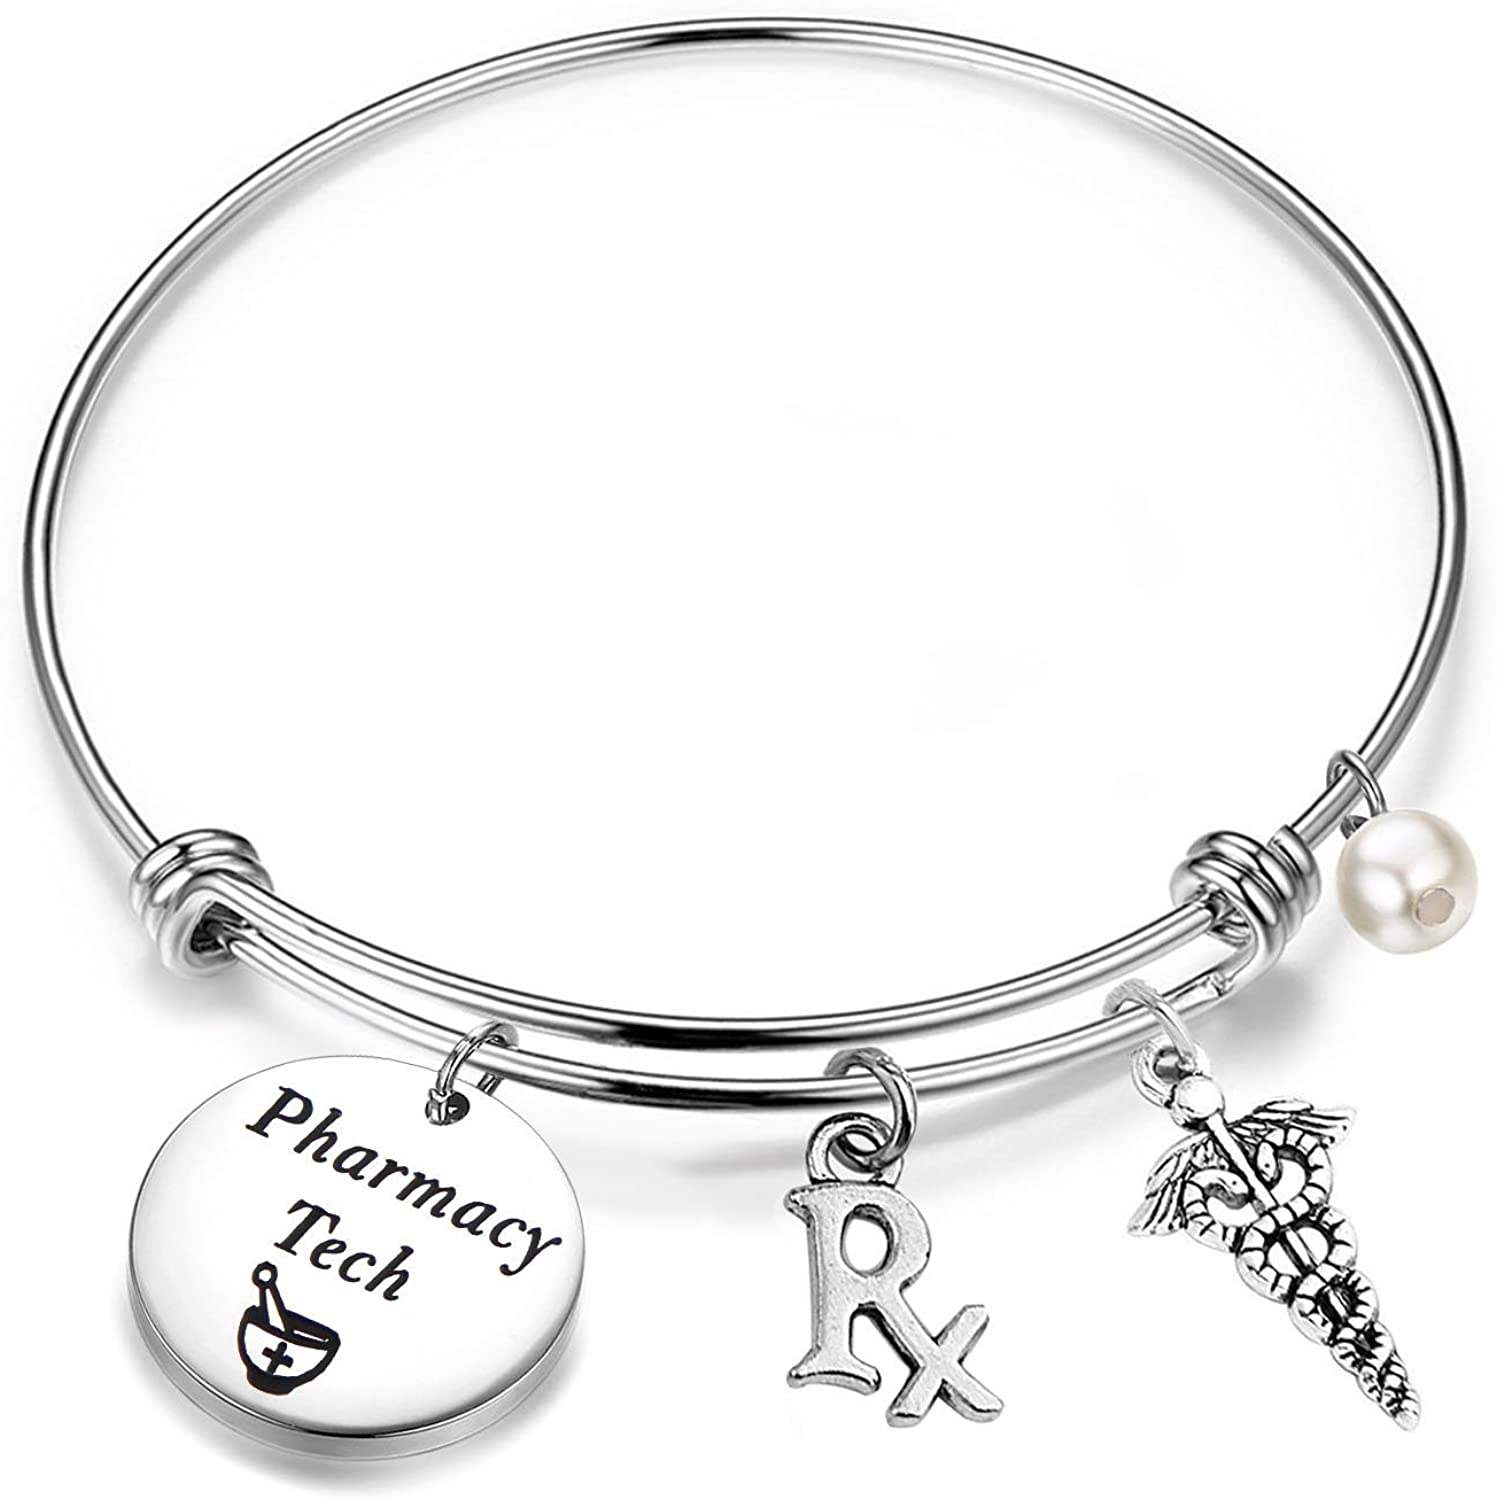 QIIER Pharmacy Tech Gift Pharmacy Technician Bracelet Expandable Wire Bangle RX Jewelry Gift for Pharmacist (Silver)